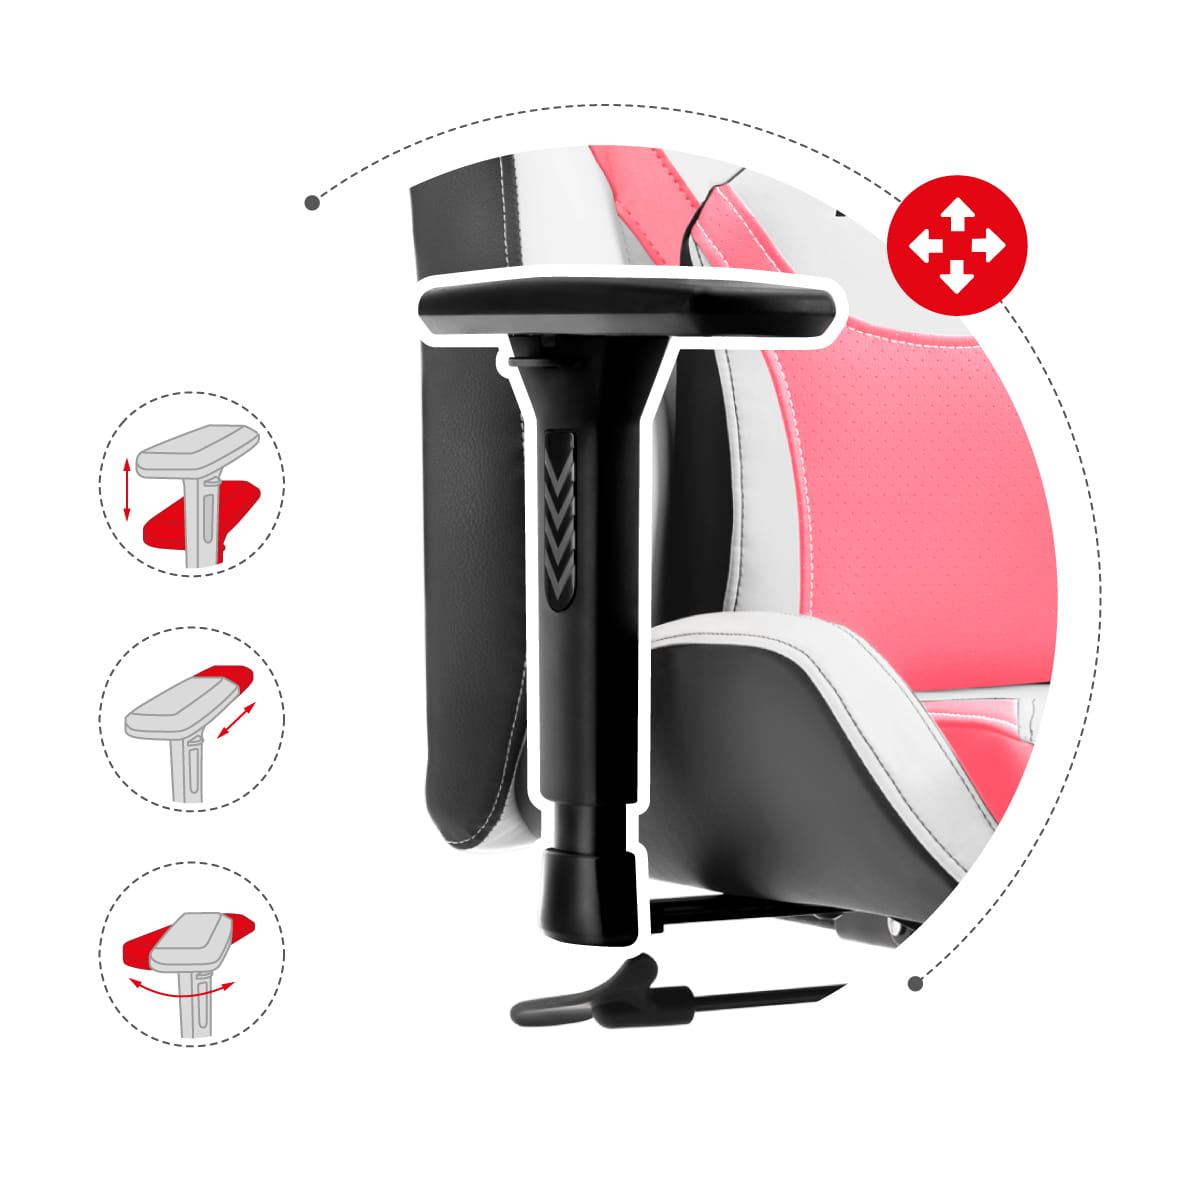 Gaming chair force 7.3 pink 6